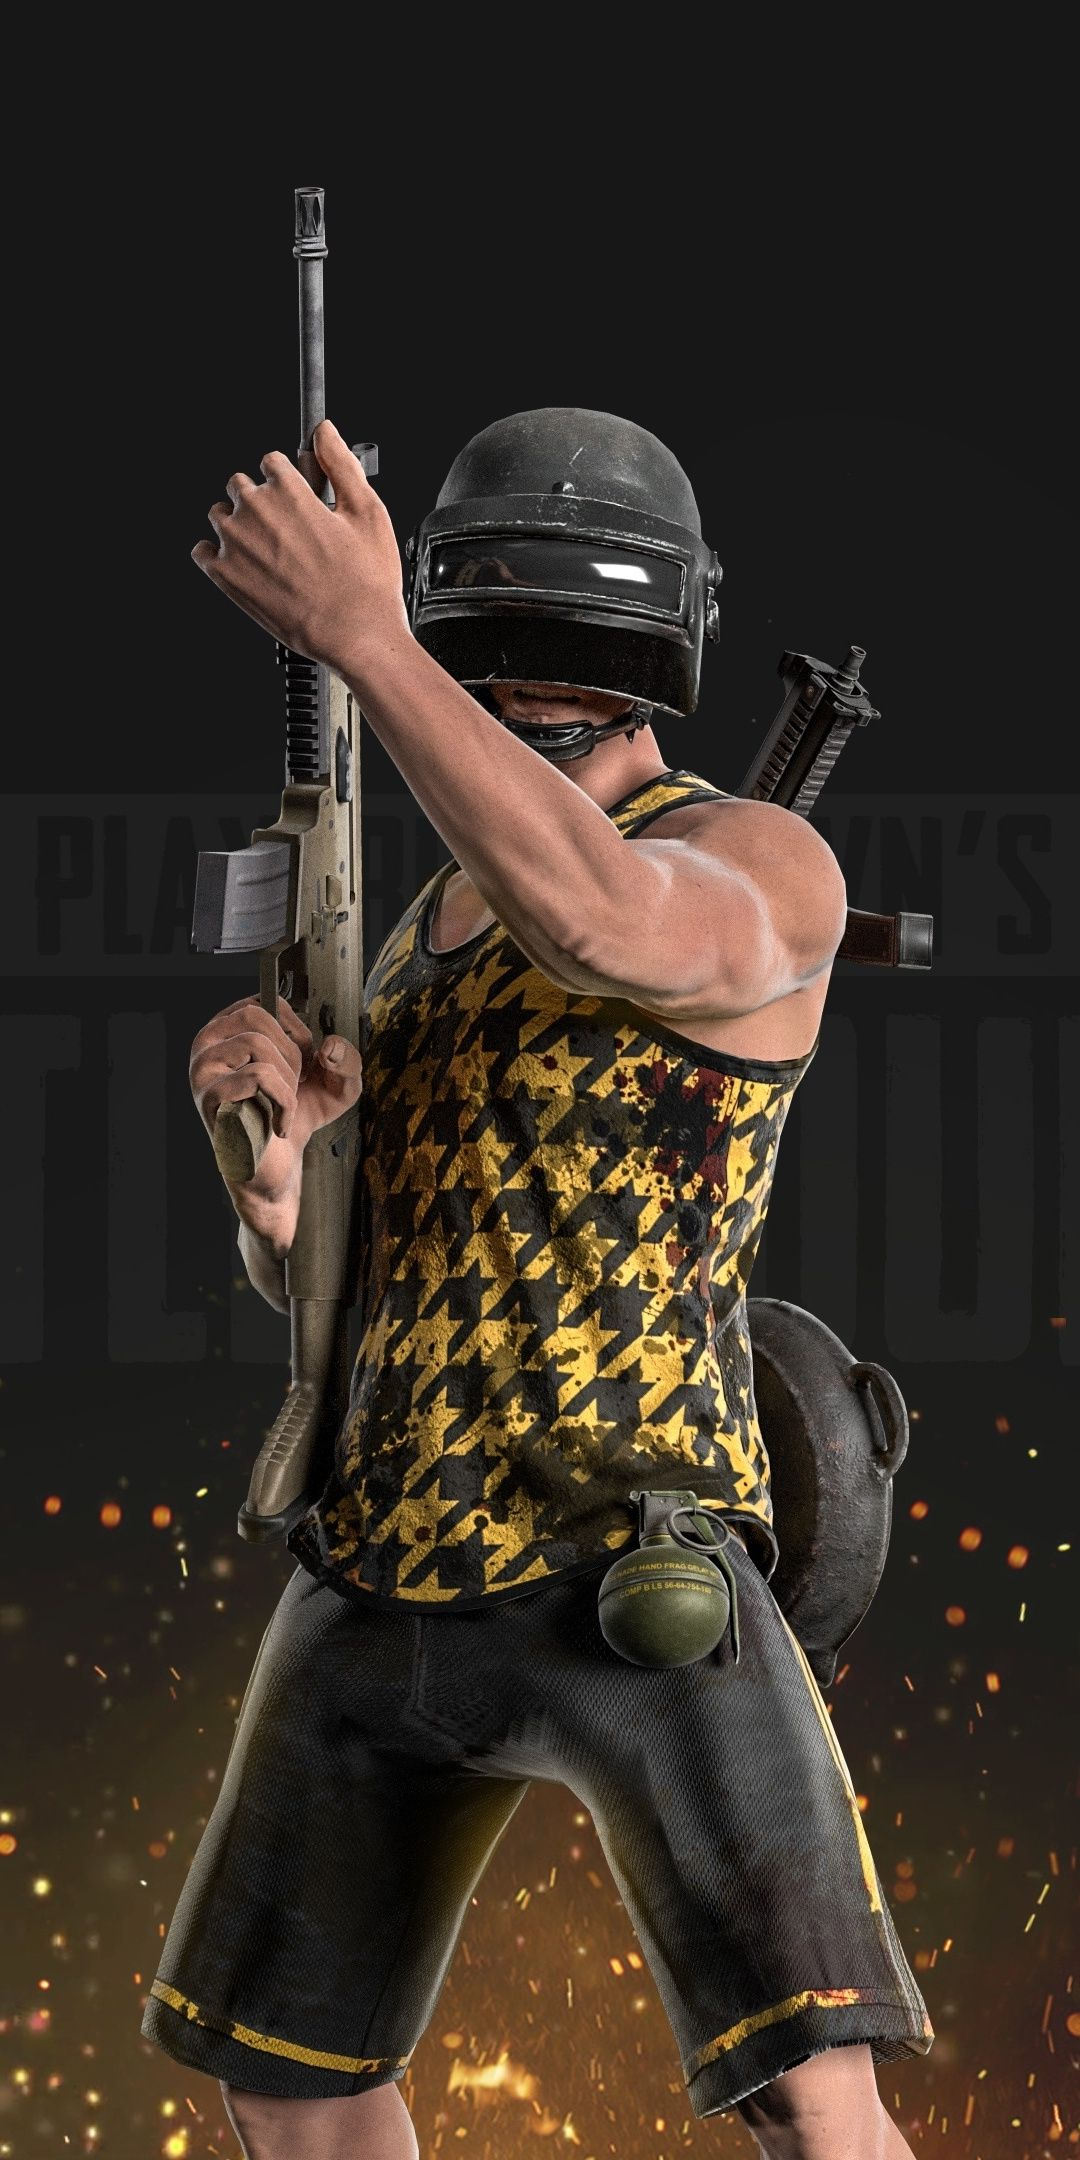 Pubg Video Game Helmet Guy In Shorts 1080x2160 Wallpaper Gaming Wallpapers Hd Wallpapers For Mobile Game Wallpaper Iphone Get inspired for pubg hd wallpaper for